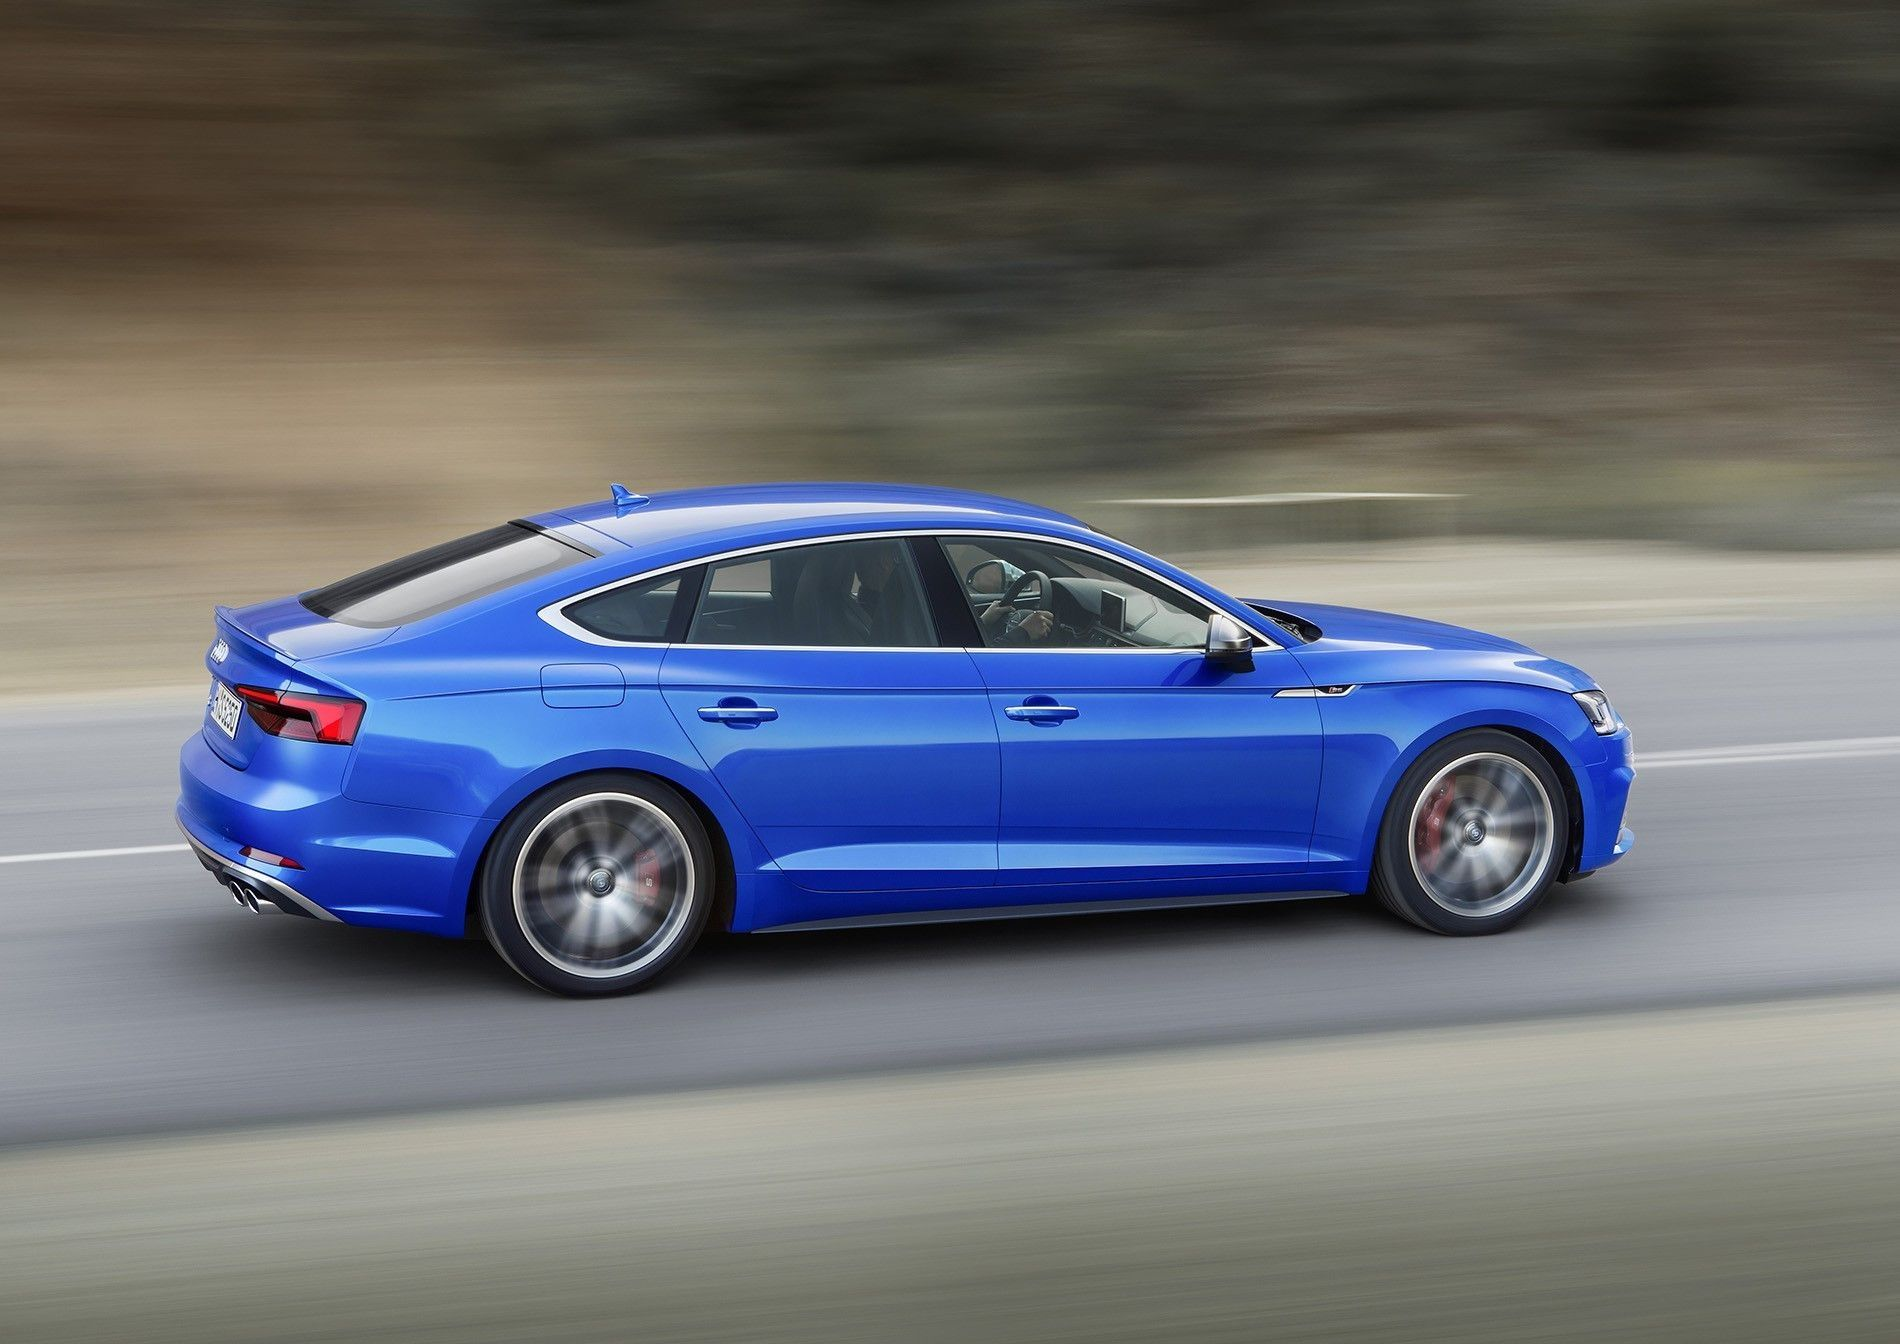 Best 2020 Audi S5 First Drive, Price, Performance and